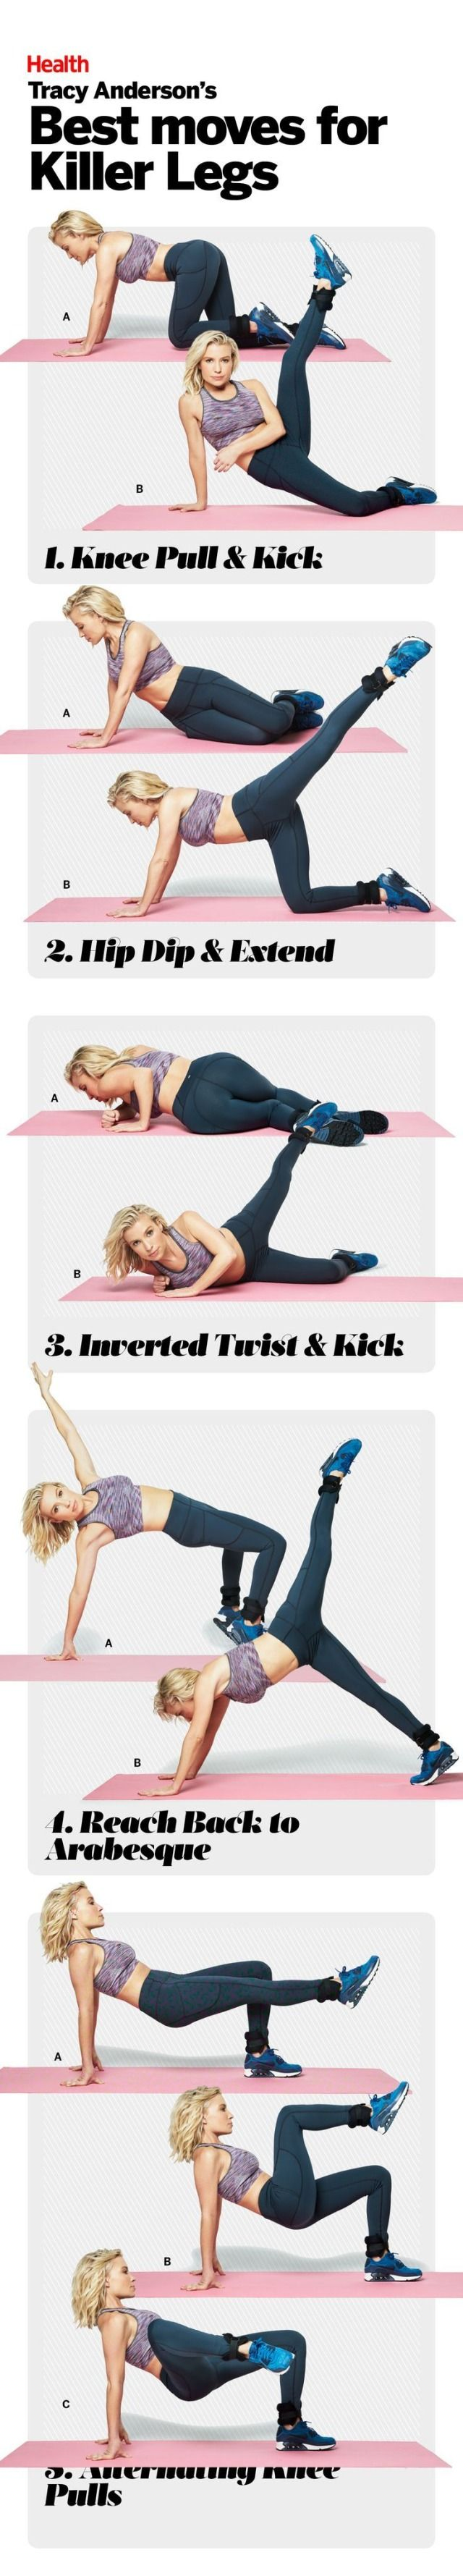 Tracy Anderson's Best Moves for Killer Legs: Follow these five moves to get your legs slim, toned, and super sexy. #HEALTHxTA | Health.com